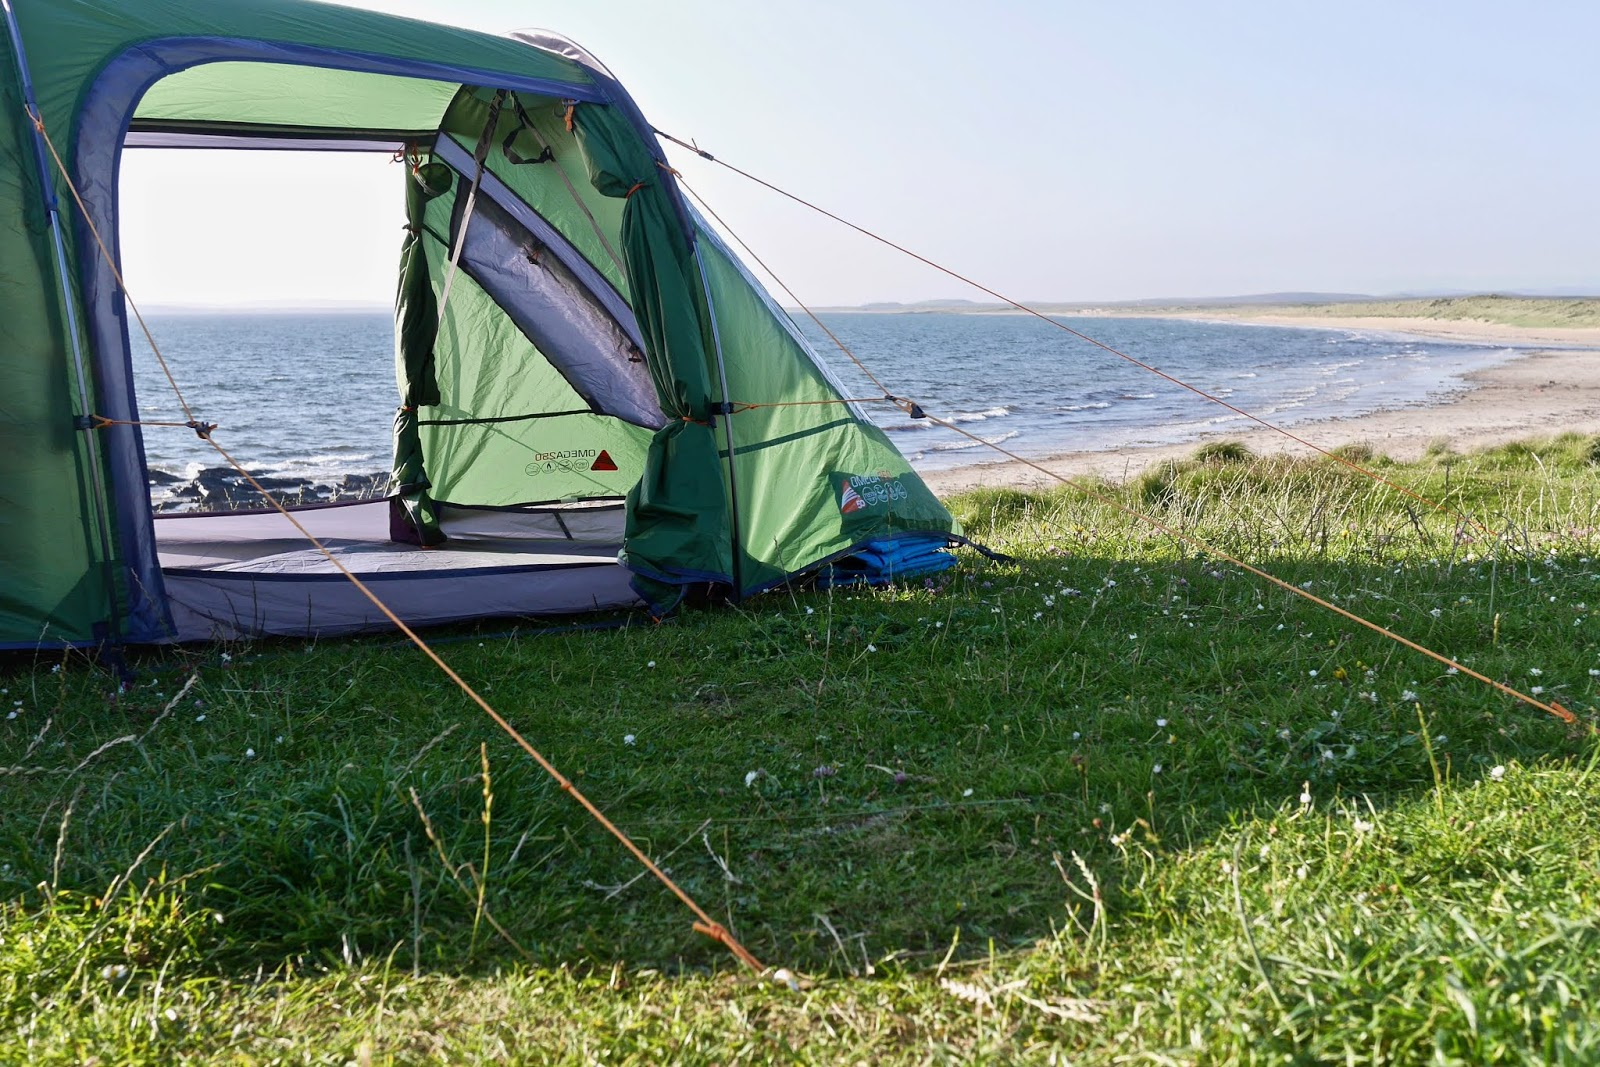 Camping in Islay, Campsites in scotland that allow fires